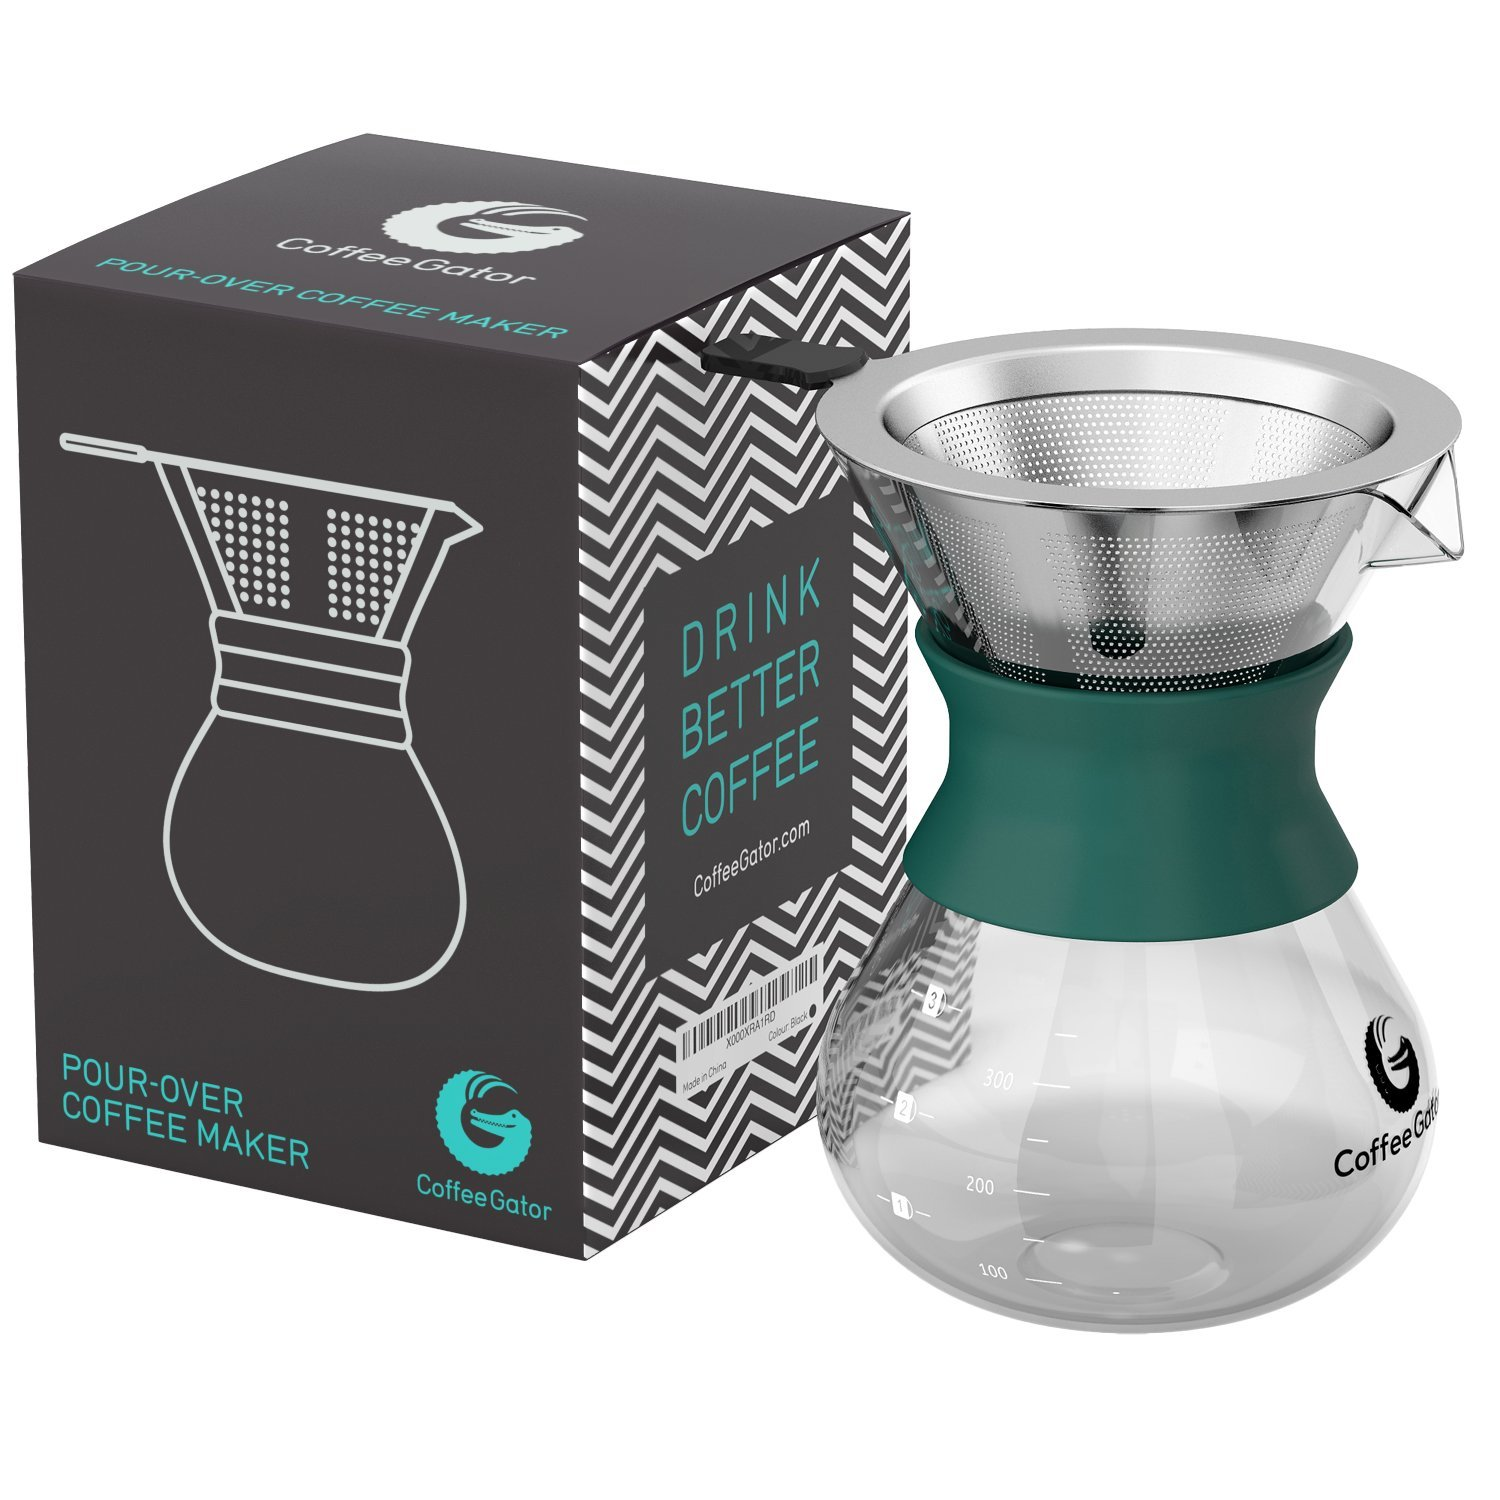 Coffee Gator Pour Over Brewer – Unlock Flavor with Paperless Filter and Carafe – 10.5 floz - Green by Coffee Gator